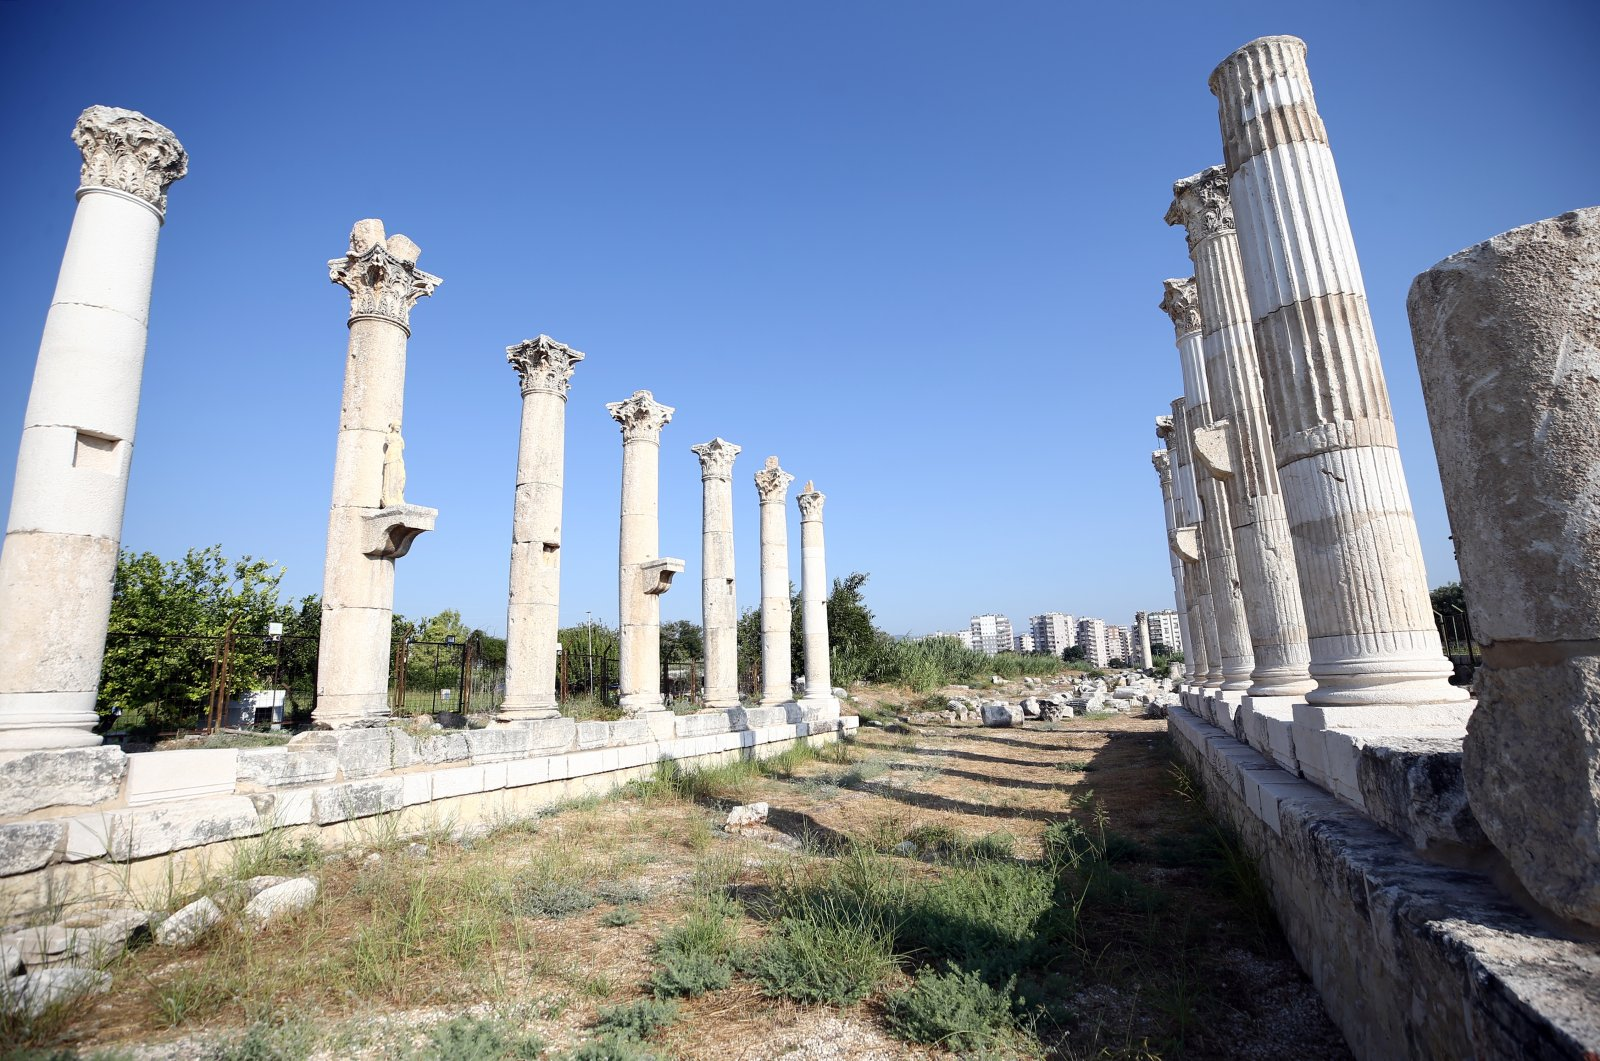 A view from the colonnaded street in the ancient city of Soli‐Pompeiopolis, Mersin, southern Turkey, August 12, 2021. (AA Photo)